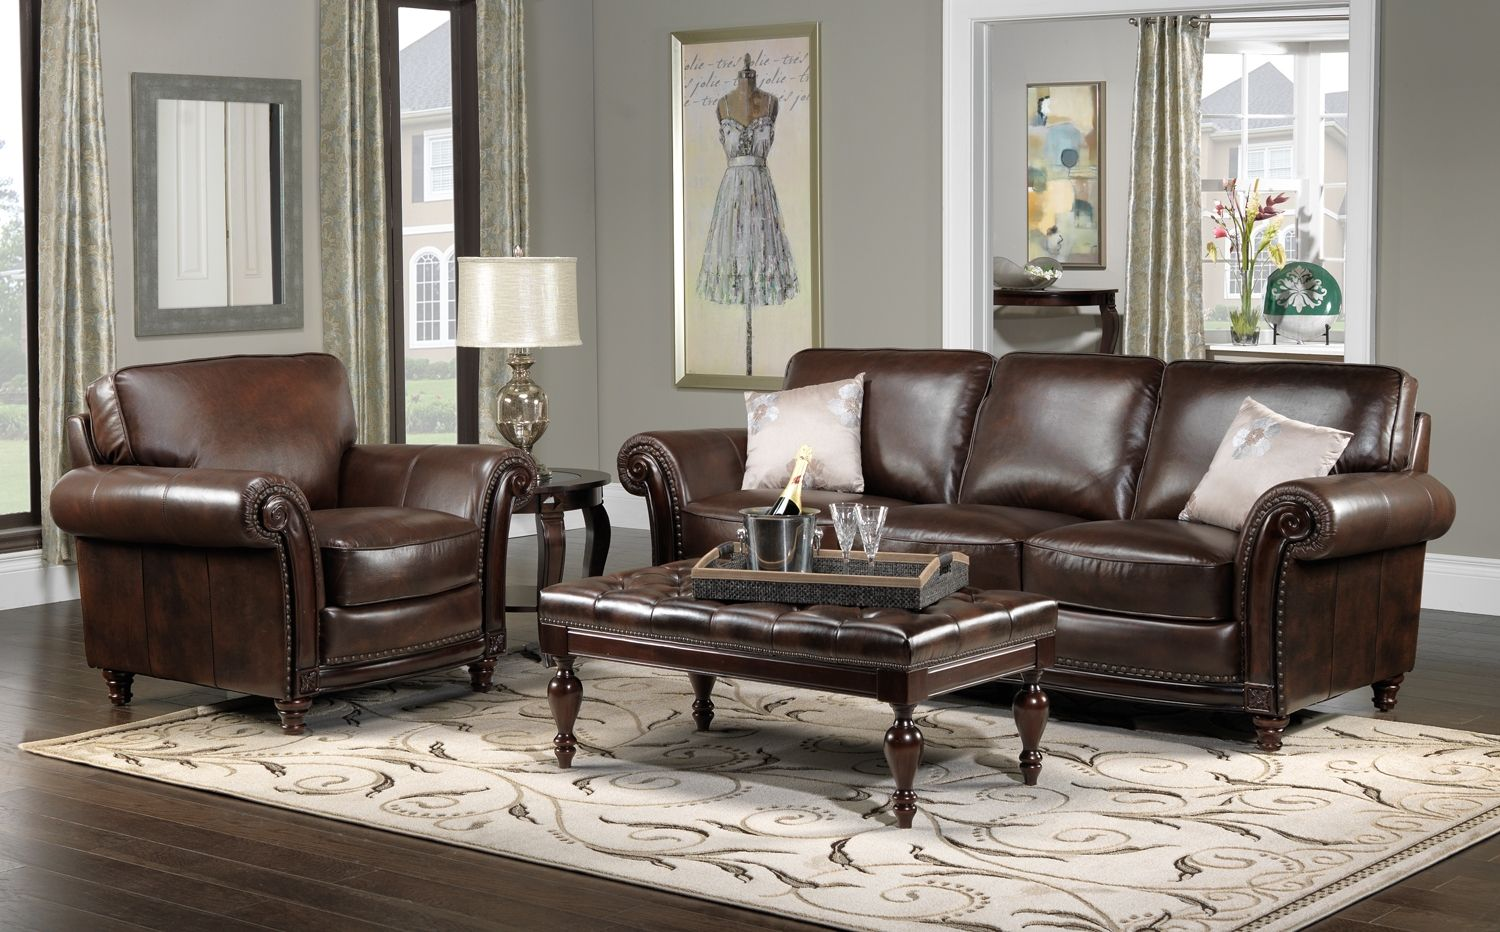 Living Room Colors For Brown Couch decoration living rooms with leather furniture. brown leather sofa